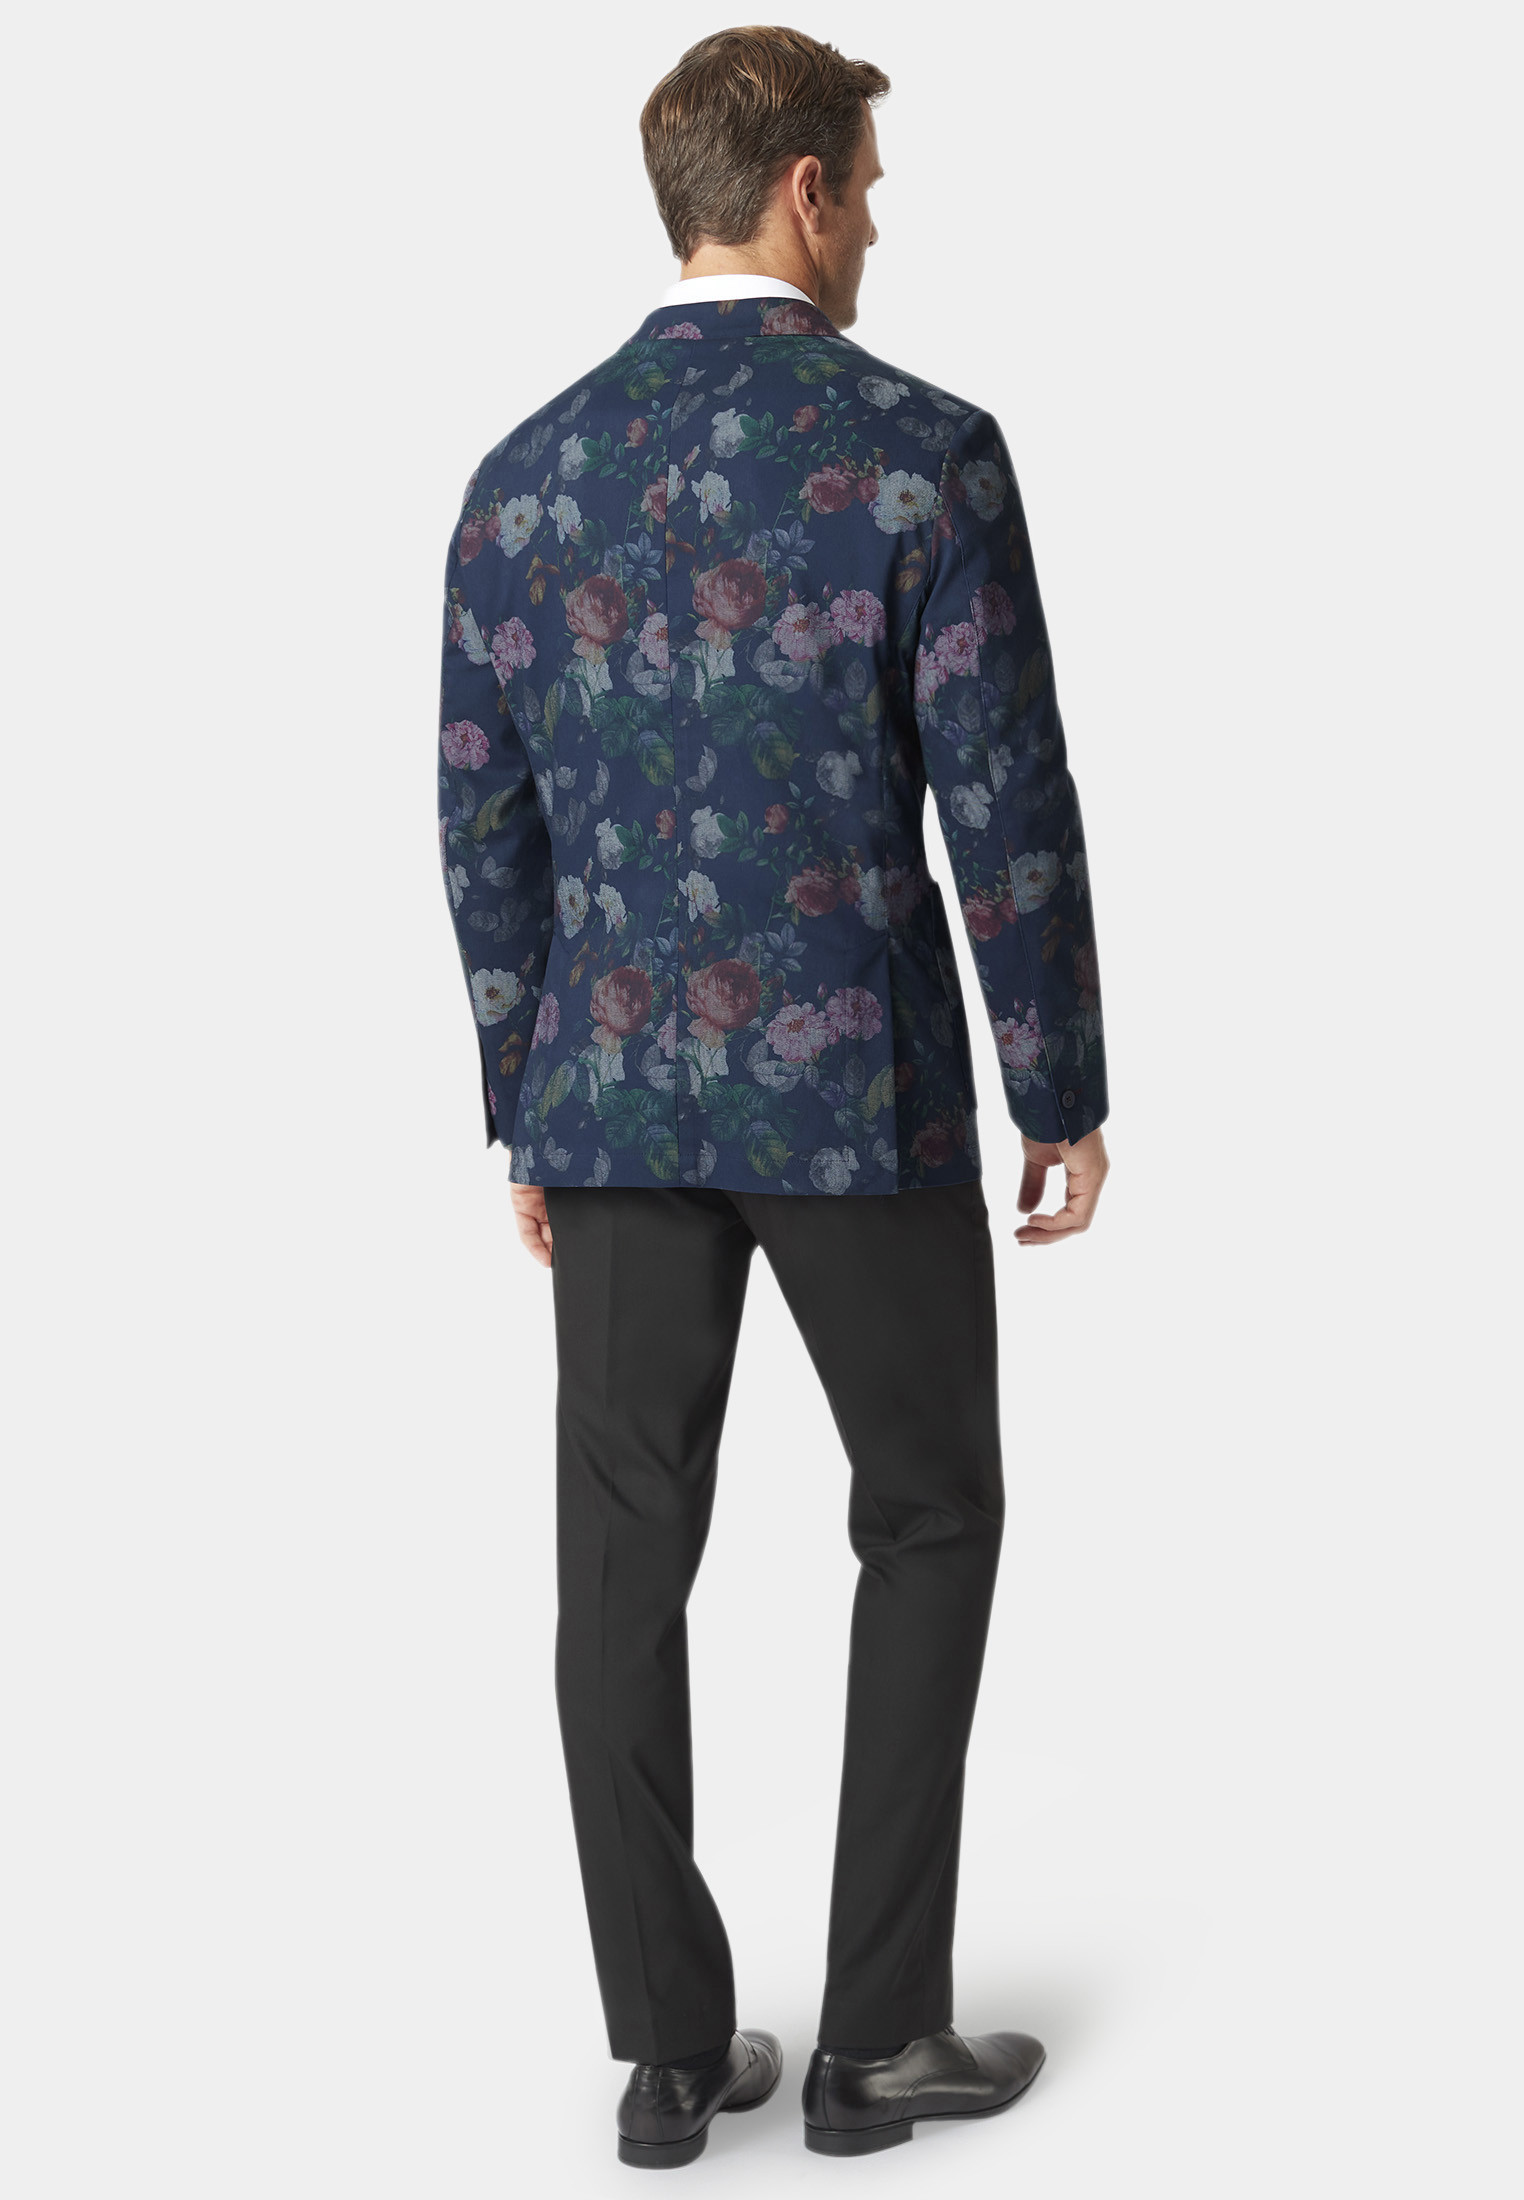 Coxwold Navy Floral Jacket